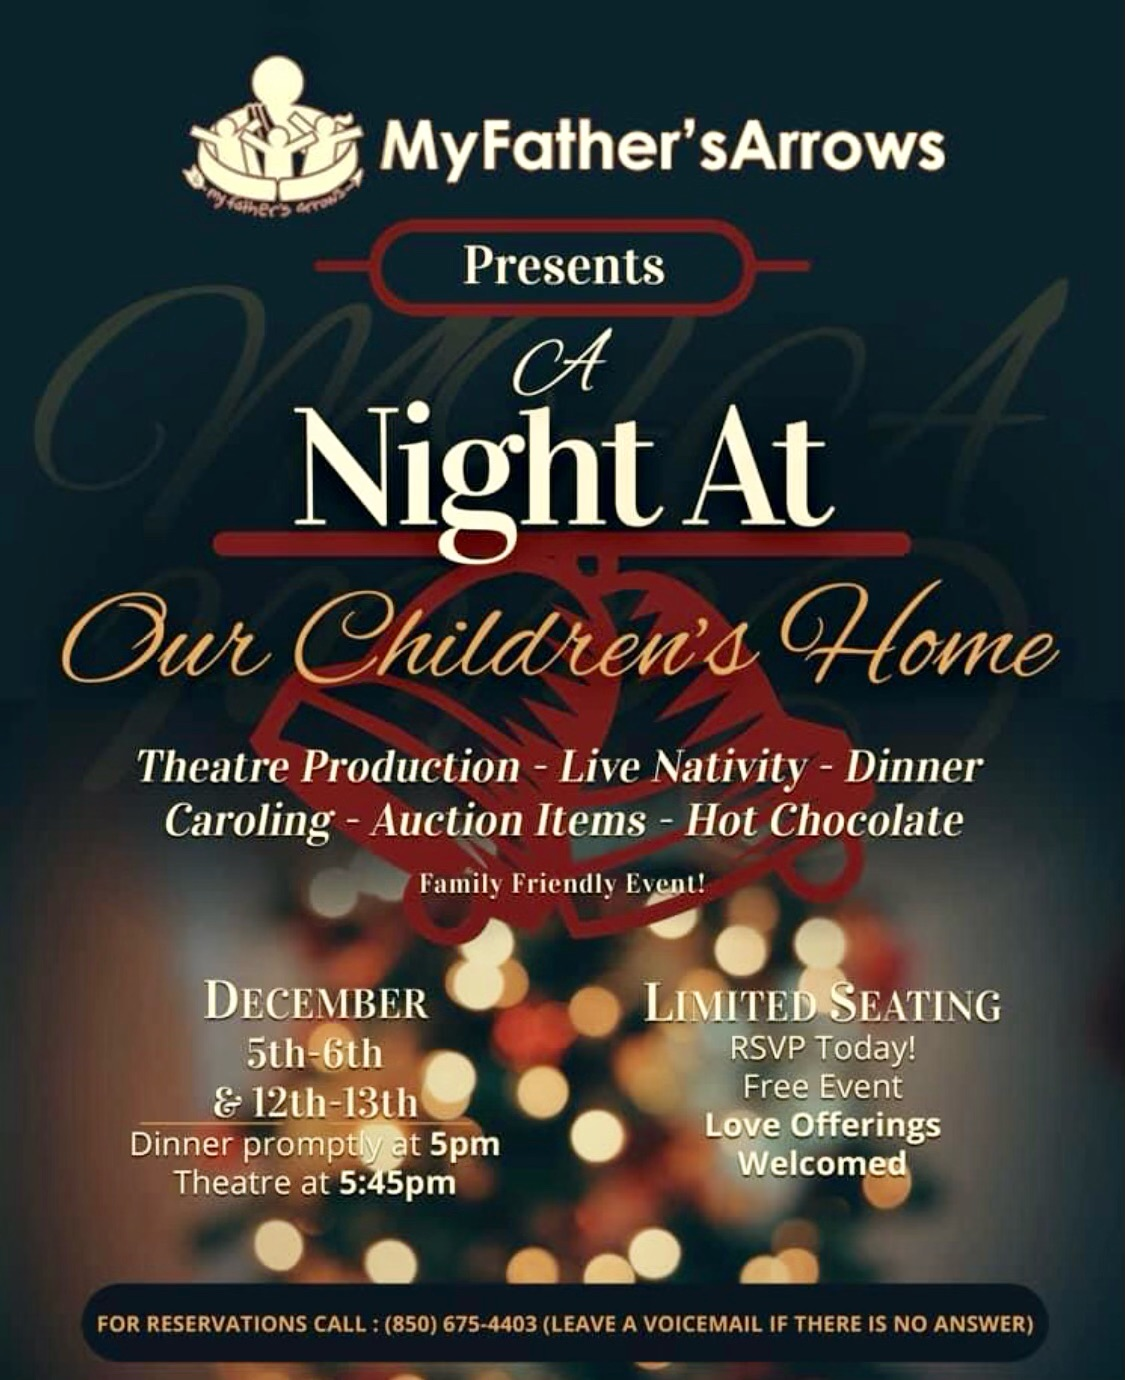 My Father's Arrows Christmas Fundraiser